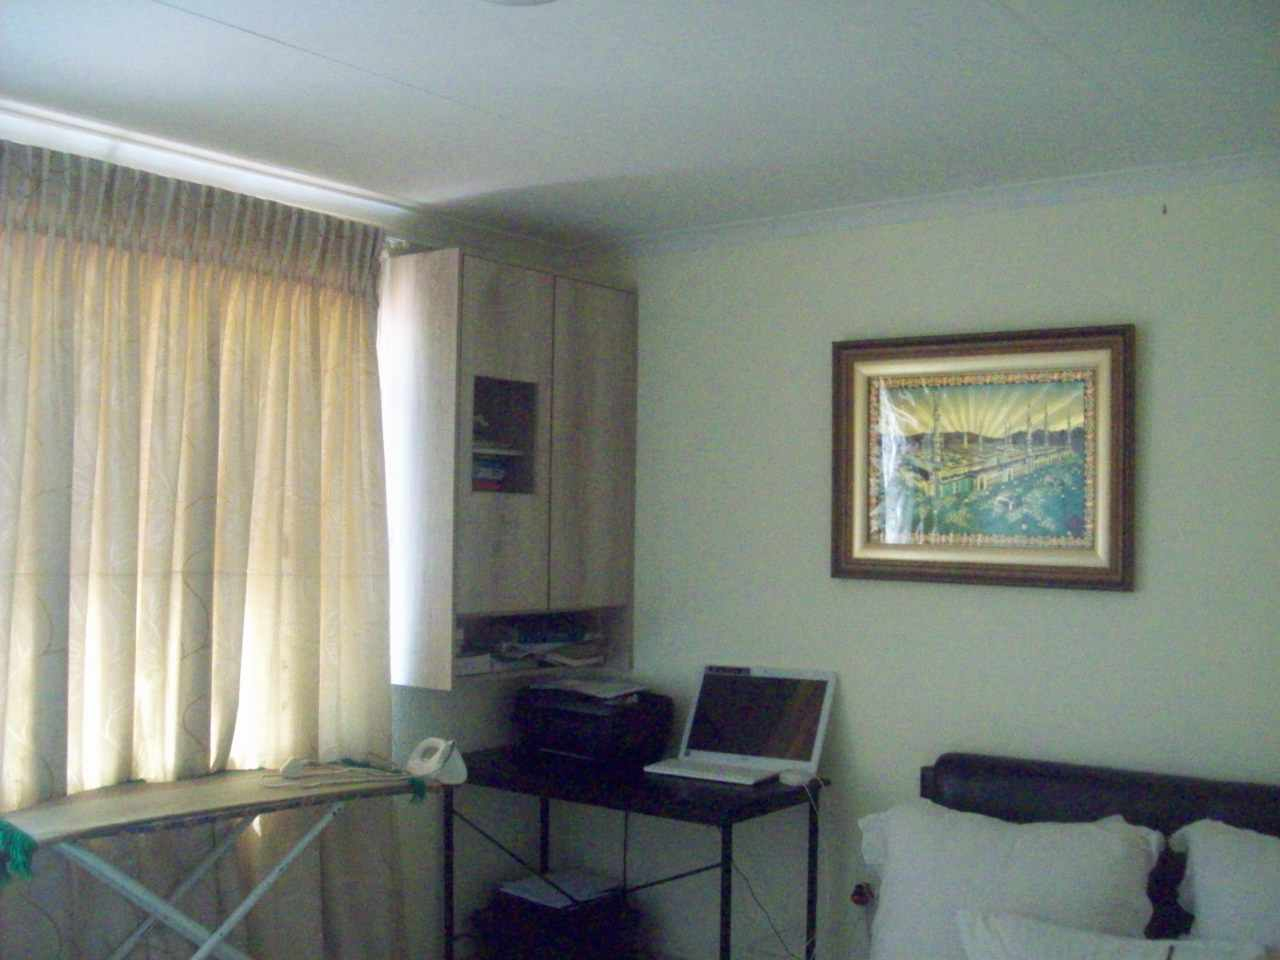 3 Bedroom Townhouse for sale in Bassonia ENT0071278 : photo#30